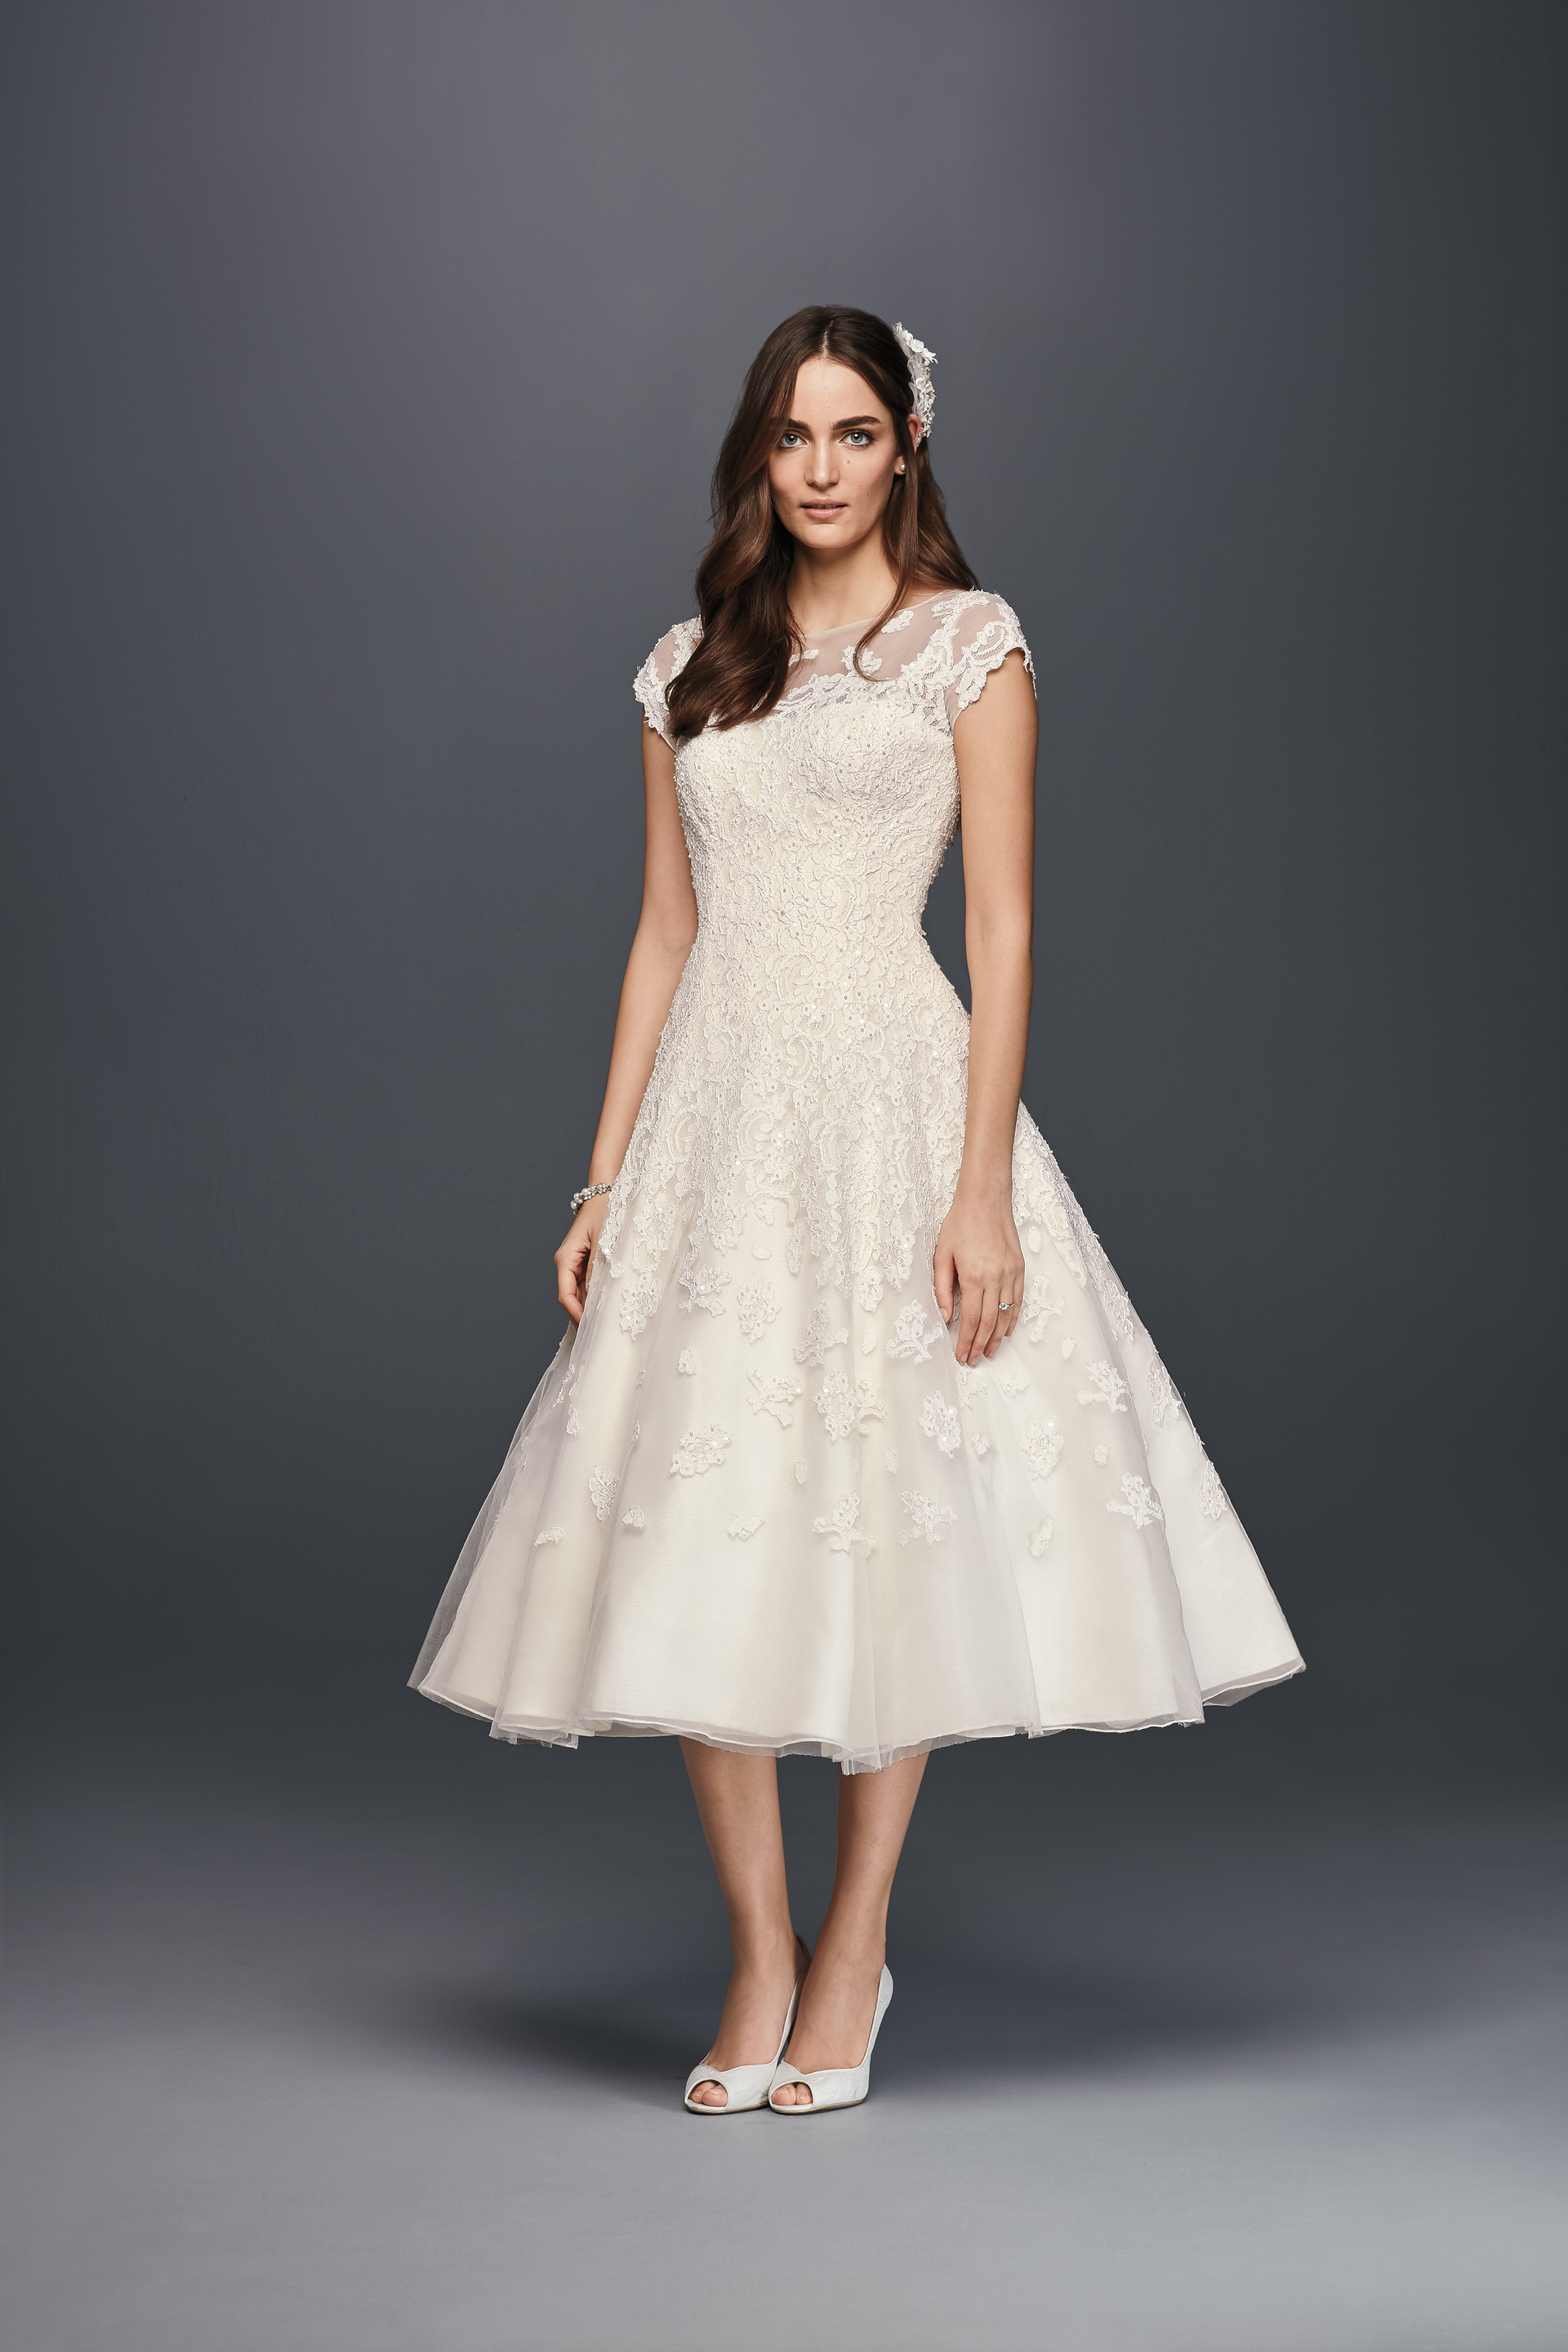 davids bridal clearance wedding dresses photo - 1